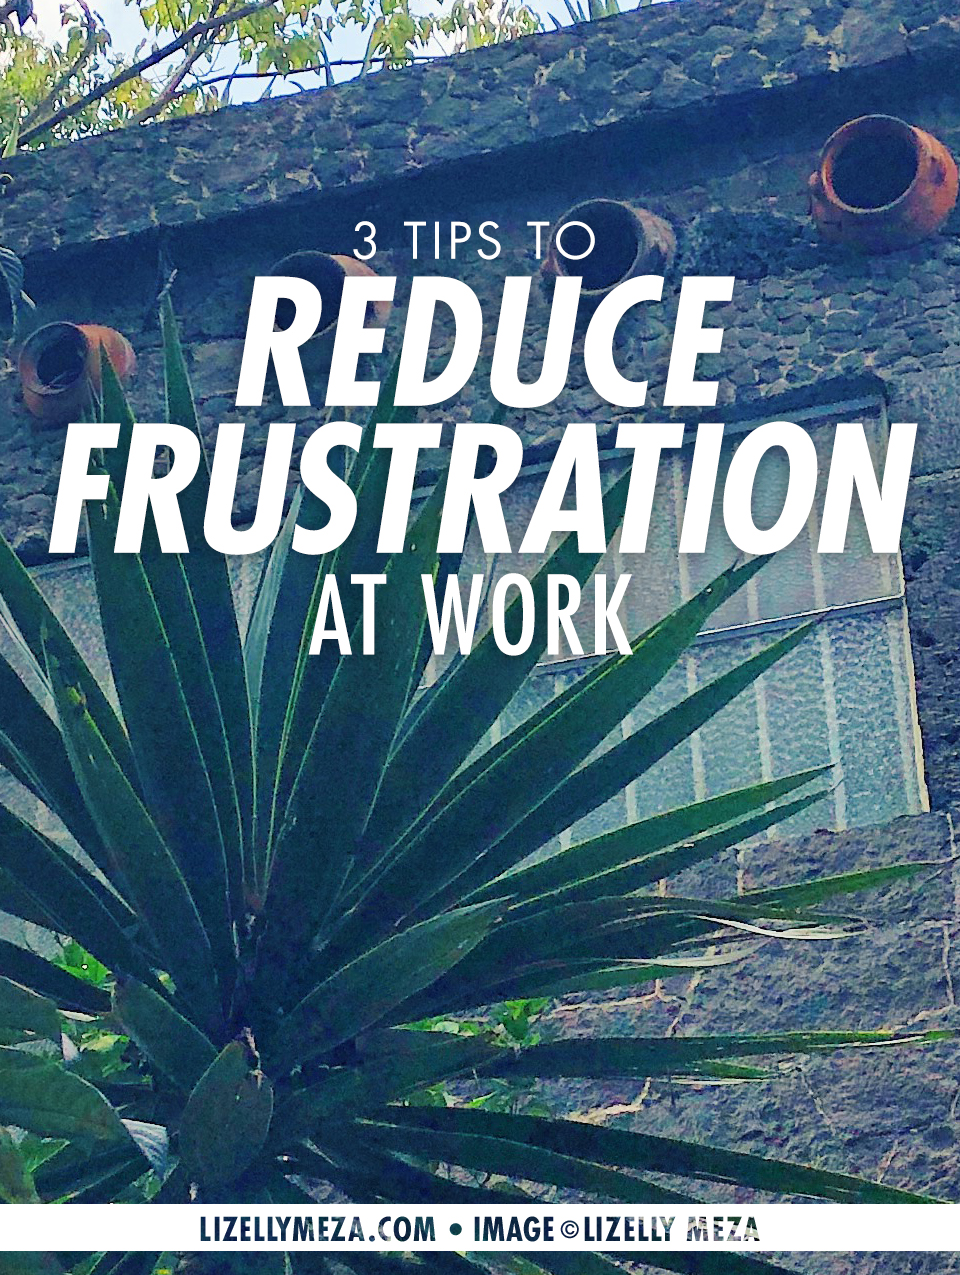 3 Tips to Reduce Frustration at Work While Building Your Dream // Lizelly Meza • Curiosities Allowed — Musings on Life & The Joy of Curiosity